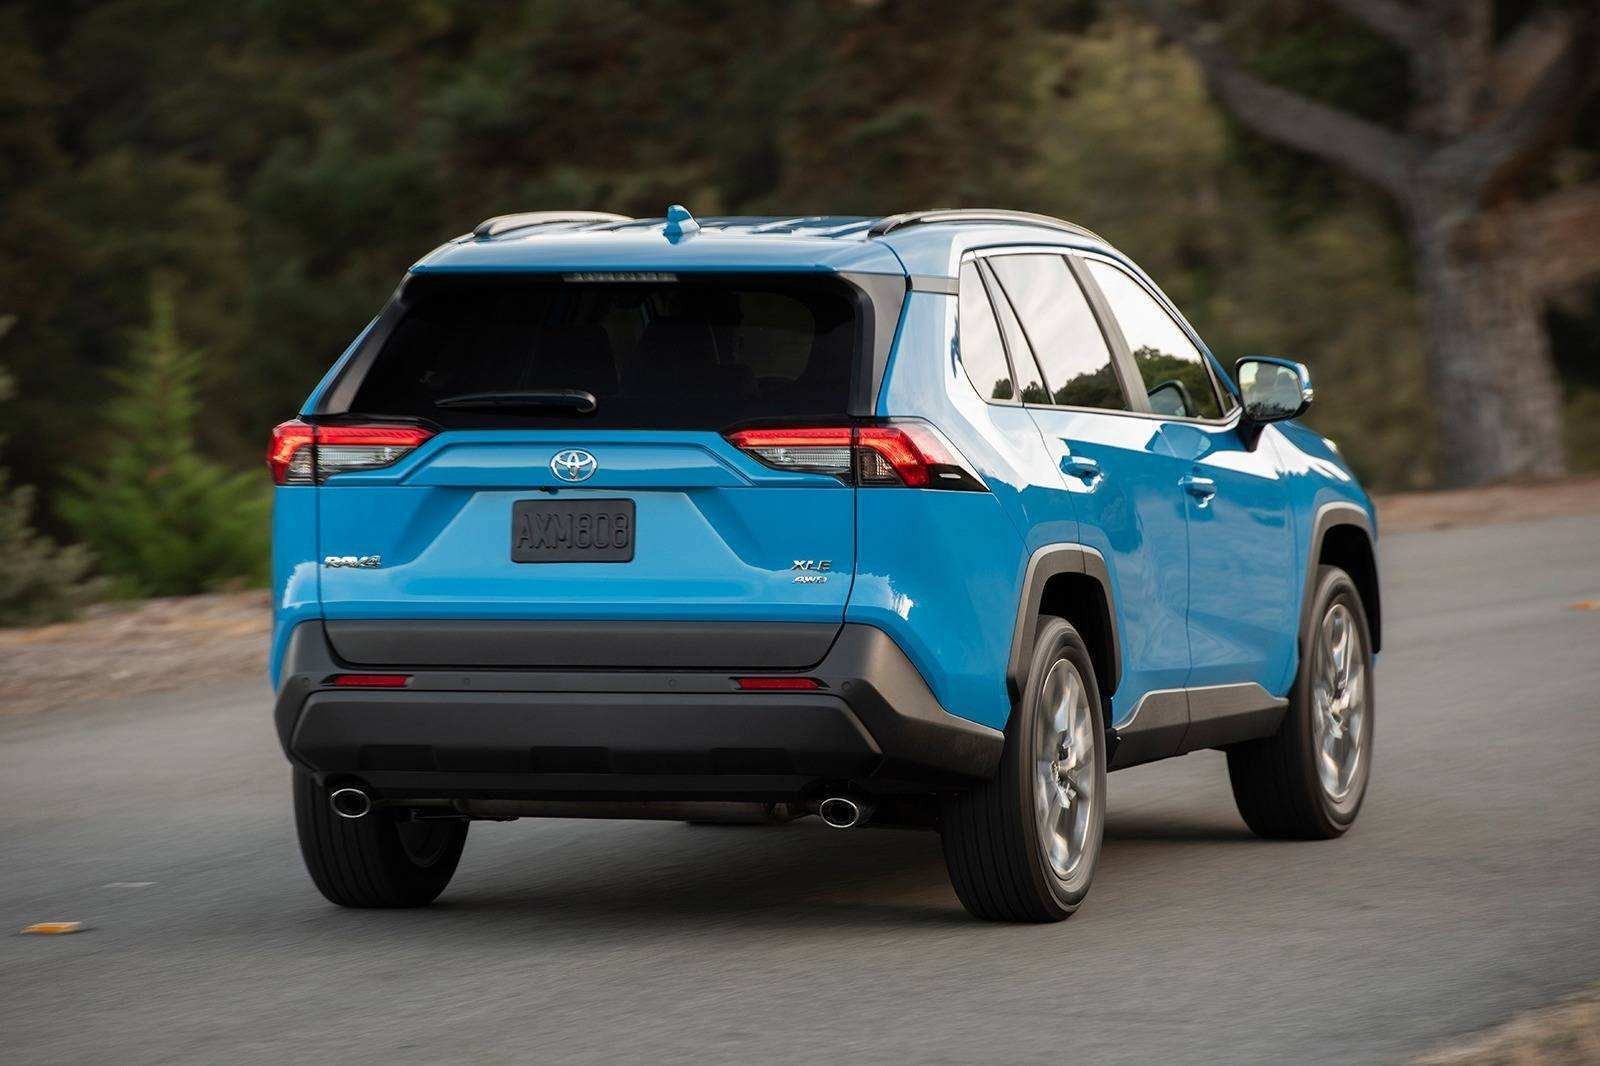 66 New 2019 Toyota Rav4 Redesign and Concept by 2019 Toyota Rav4